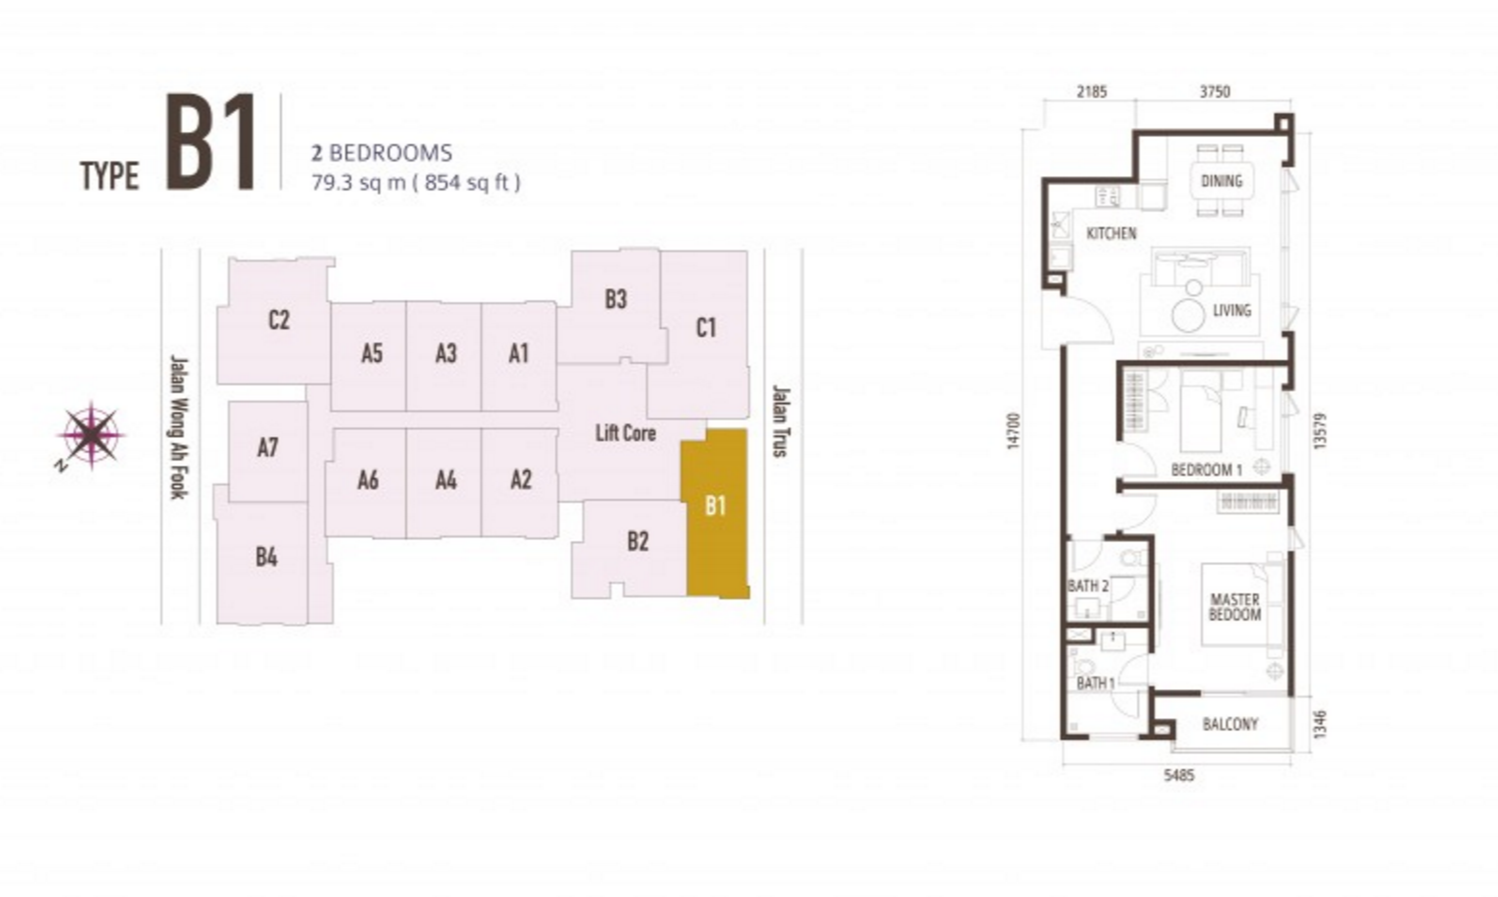 FloorPlan 2 Bedroom Type B1